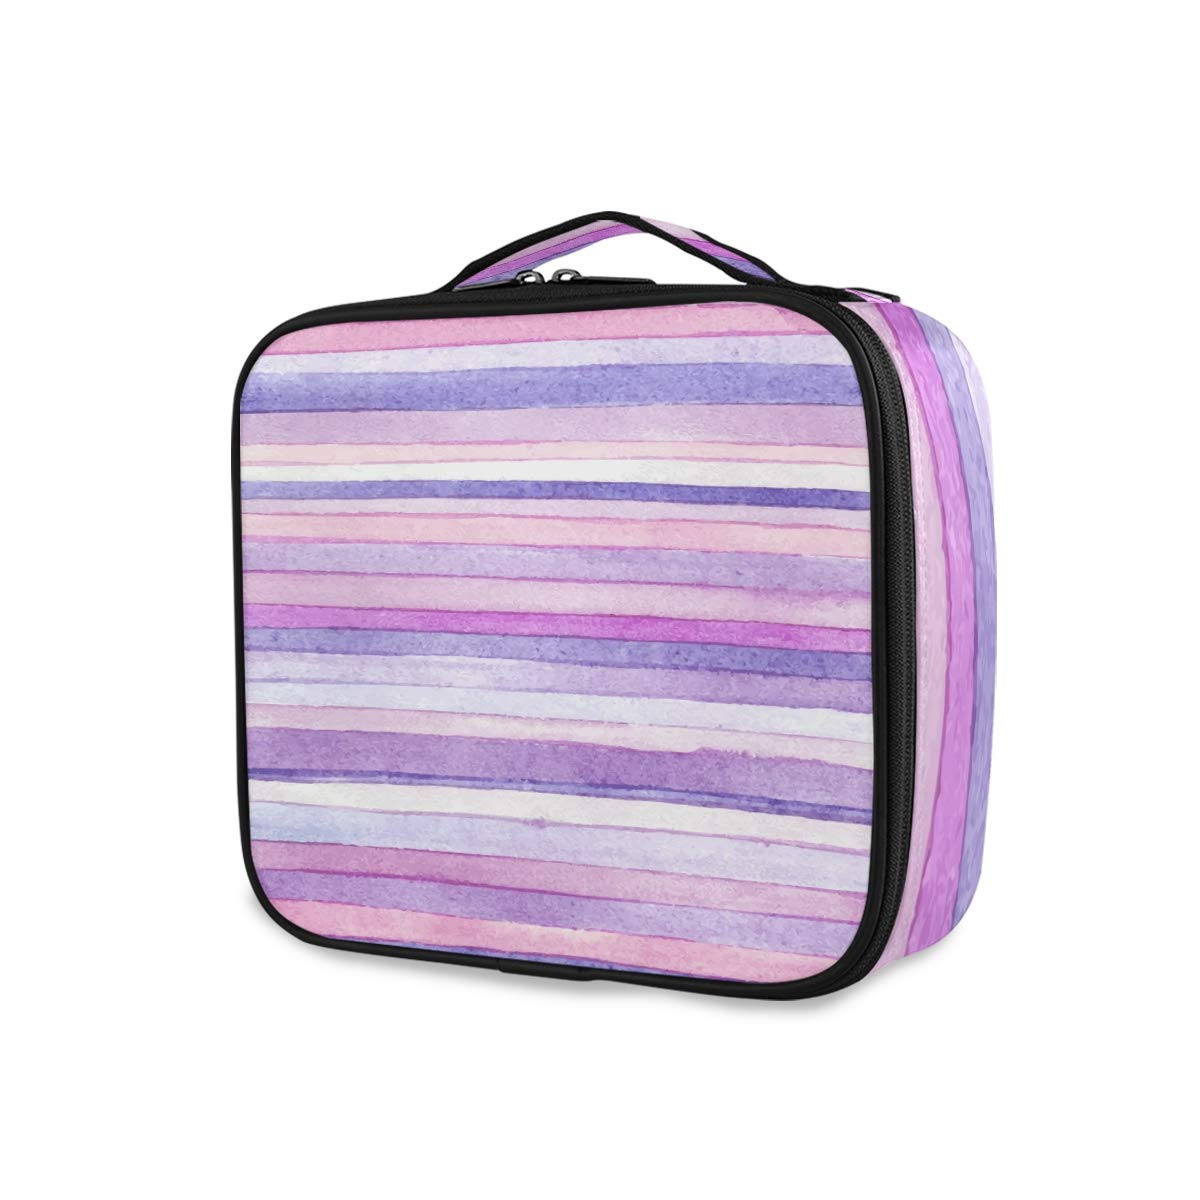 ATONO Striped Watercolor Pink Violet Purple Portable Makeup Bags Professional Cosmetic Toiletry Travel Box Organizer Compartments Case Multifunction Storage Waterproof Adjustable for Girls&Women